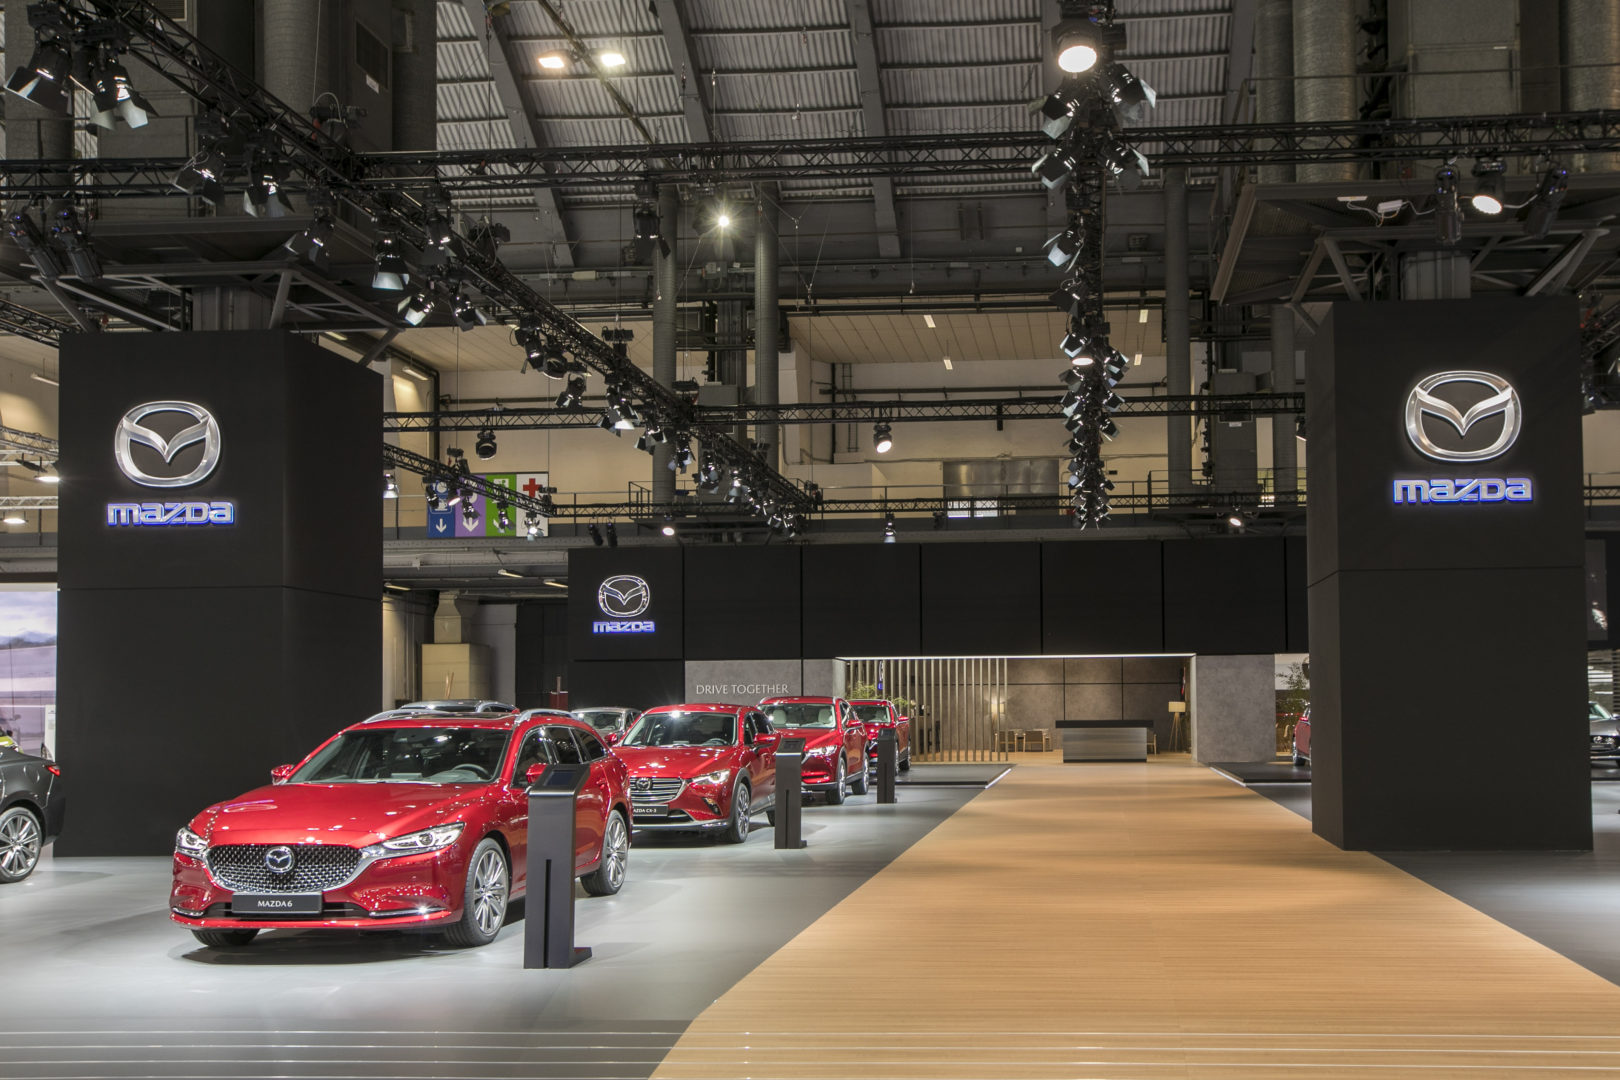 Design and construction of the MAZDA booth in AUTOMOBILE 2019.